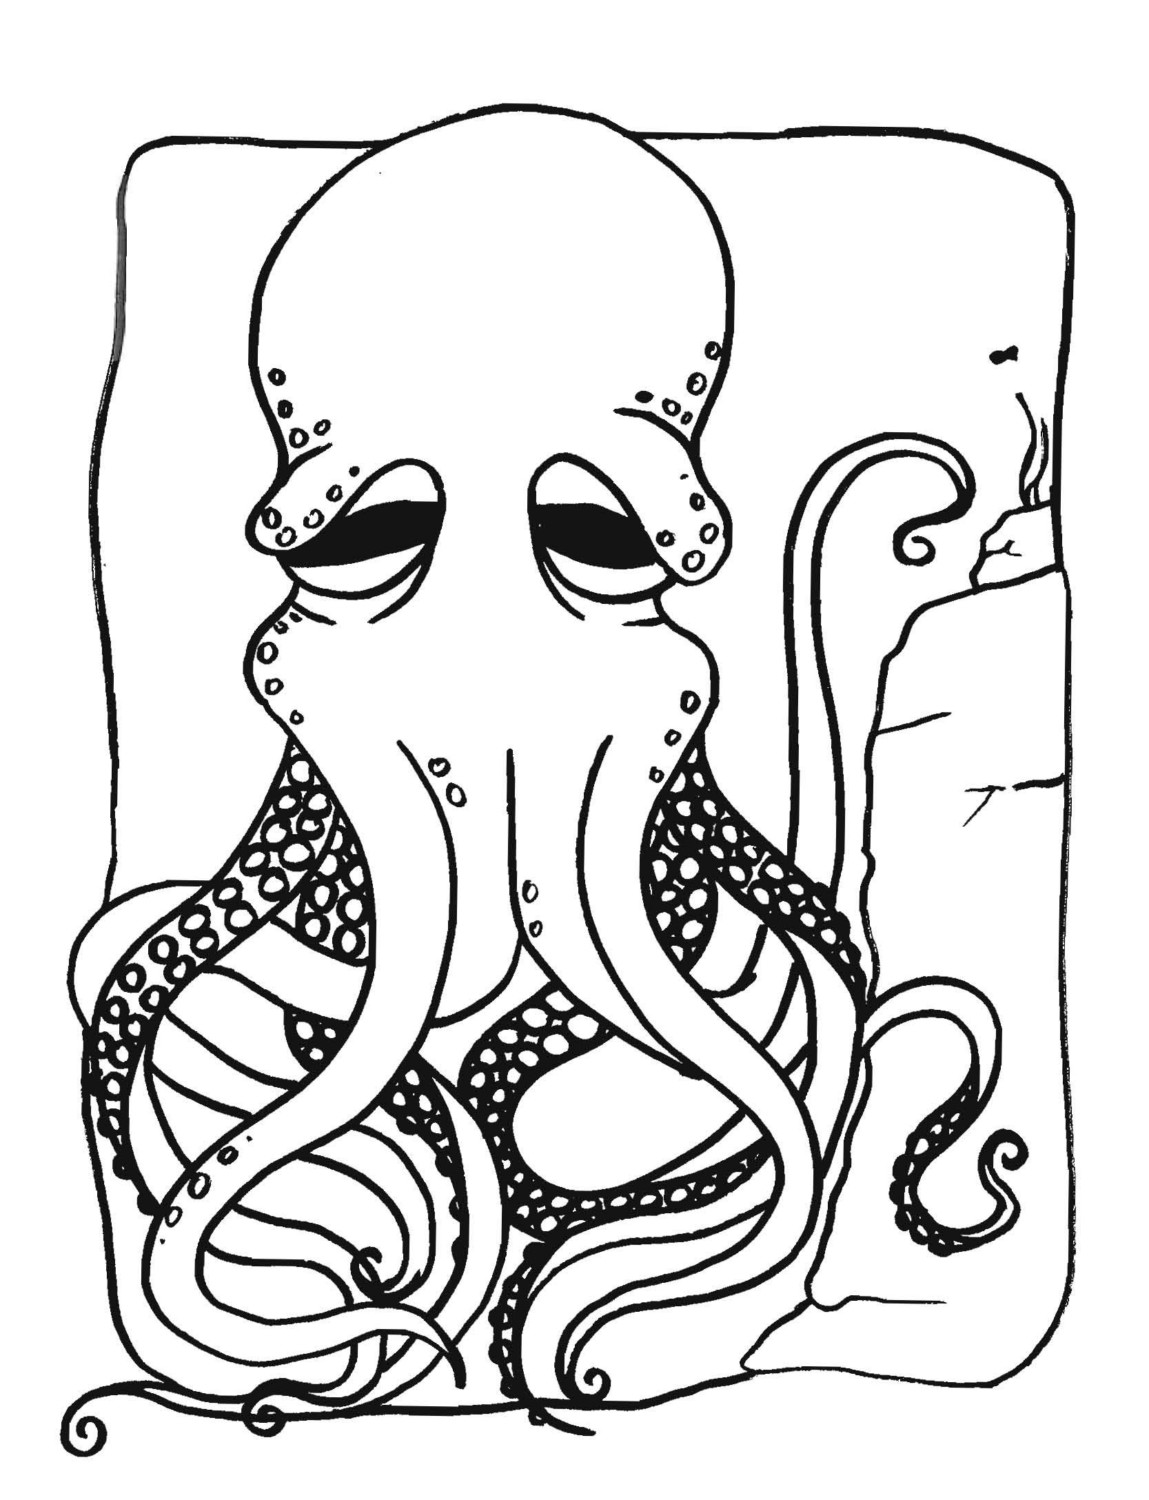 1149x1500 Free Printable Octopus Coloring Pages For Kids